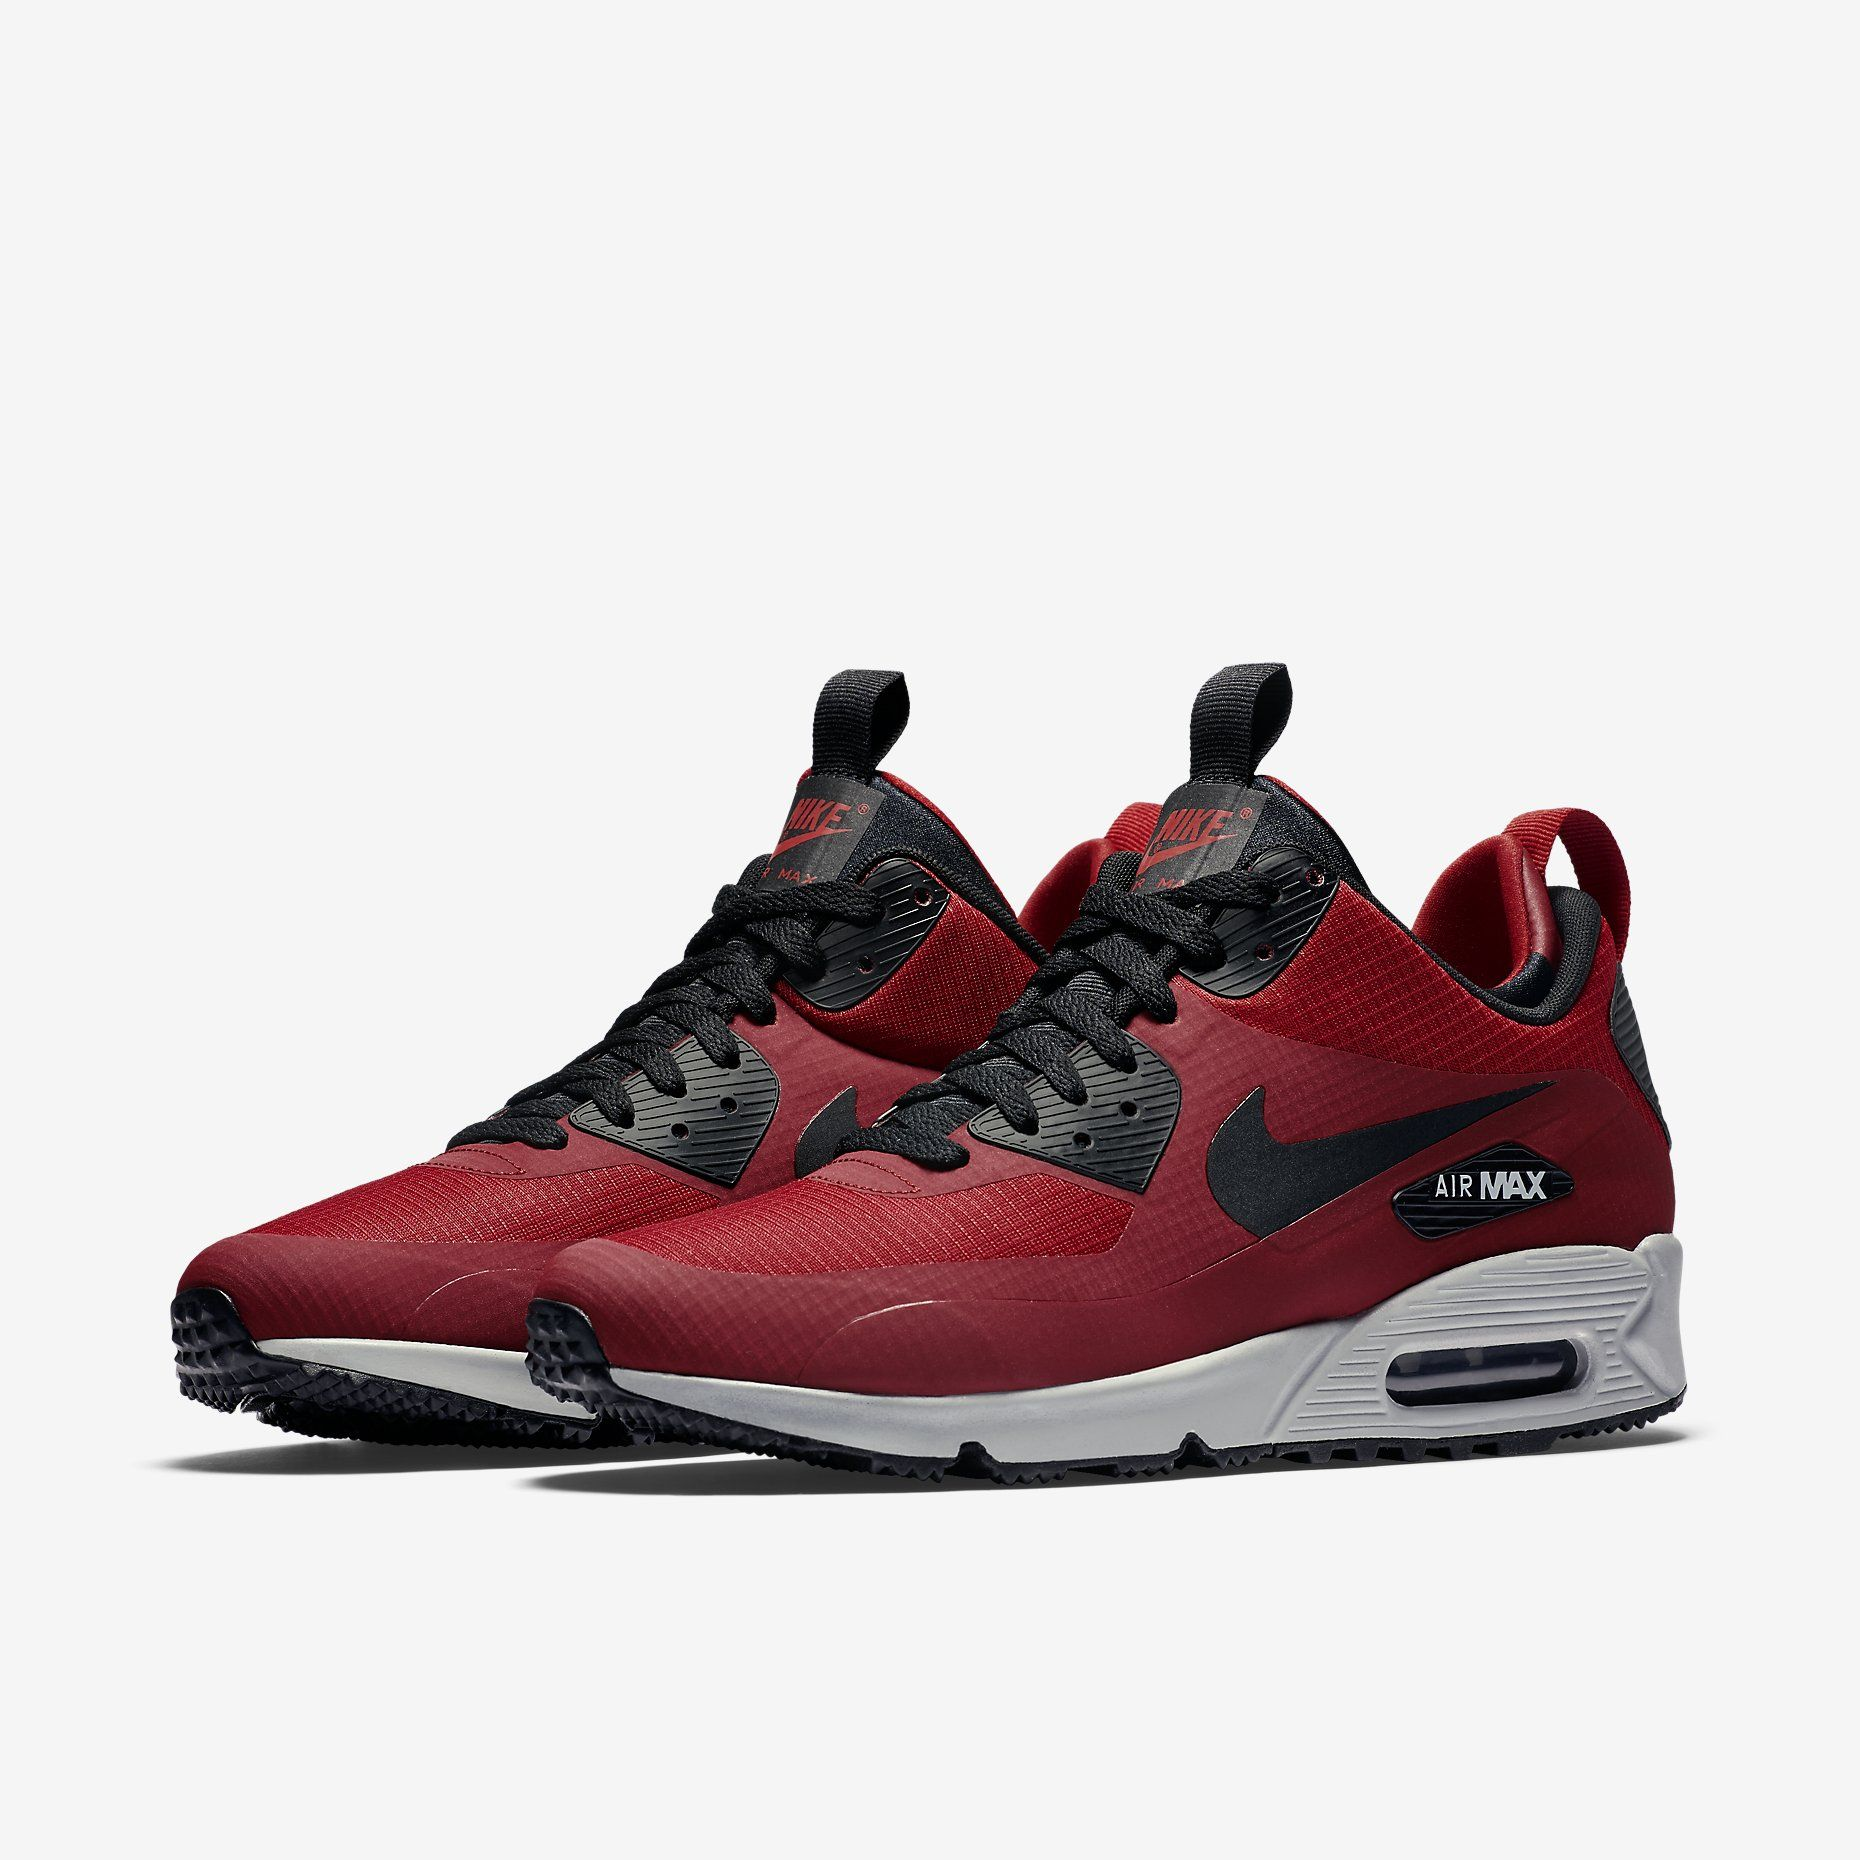 Air Max 90 Mid Winter Sneaker Boots